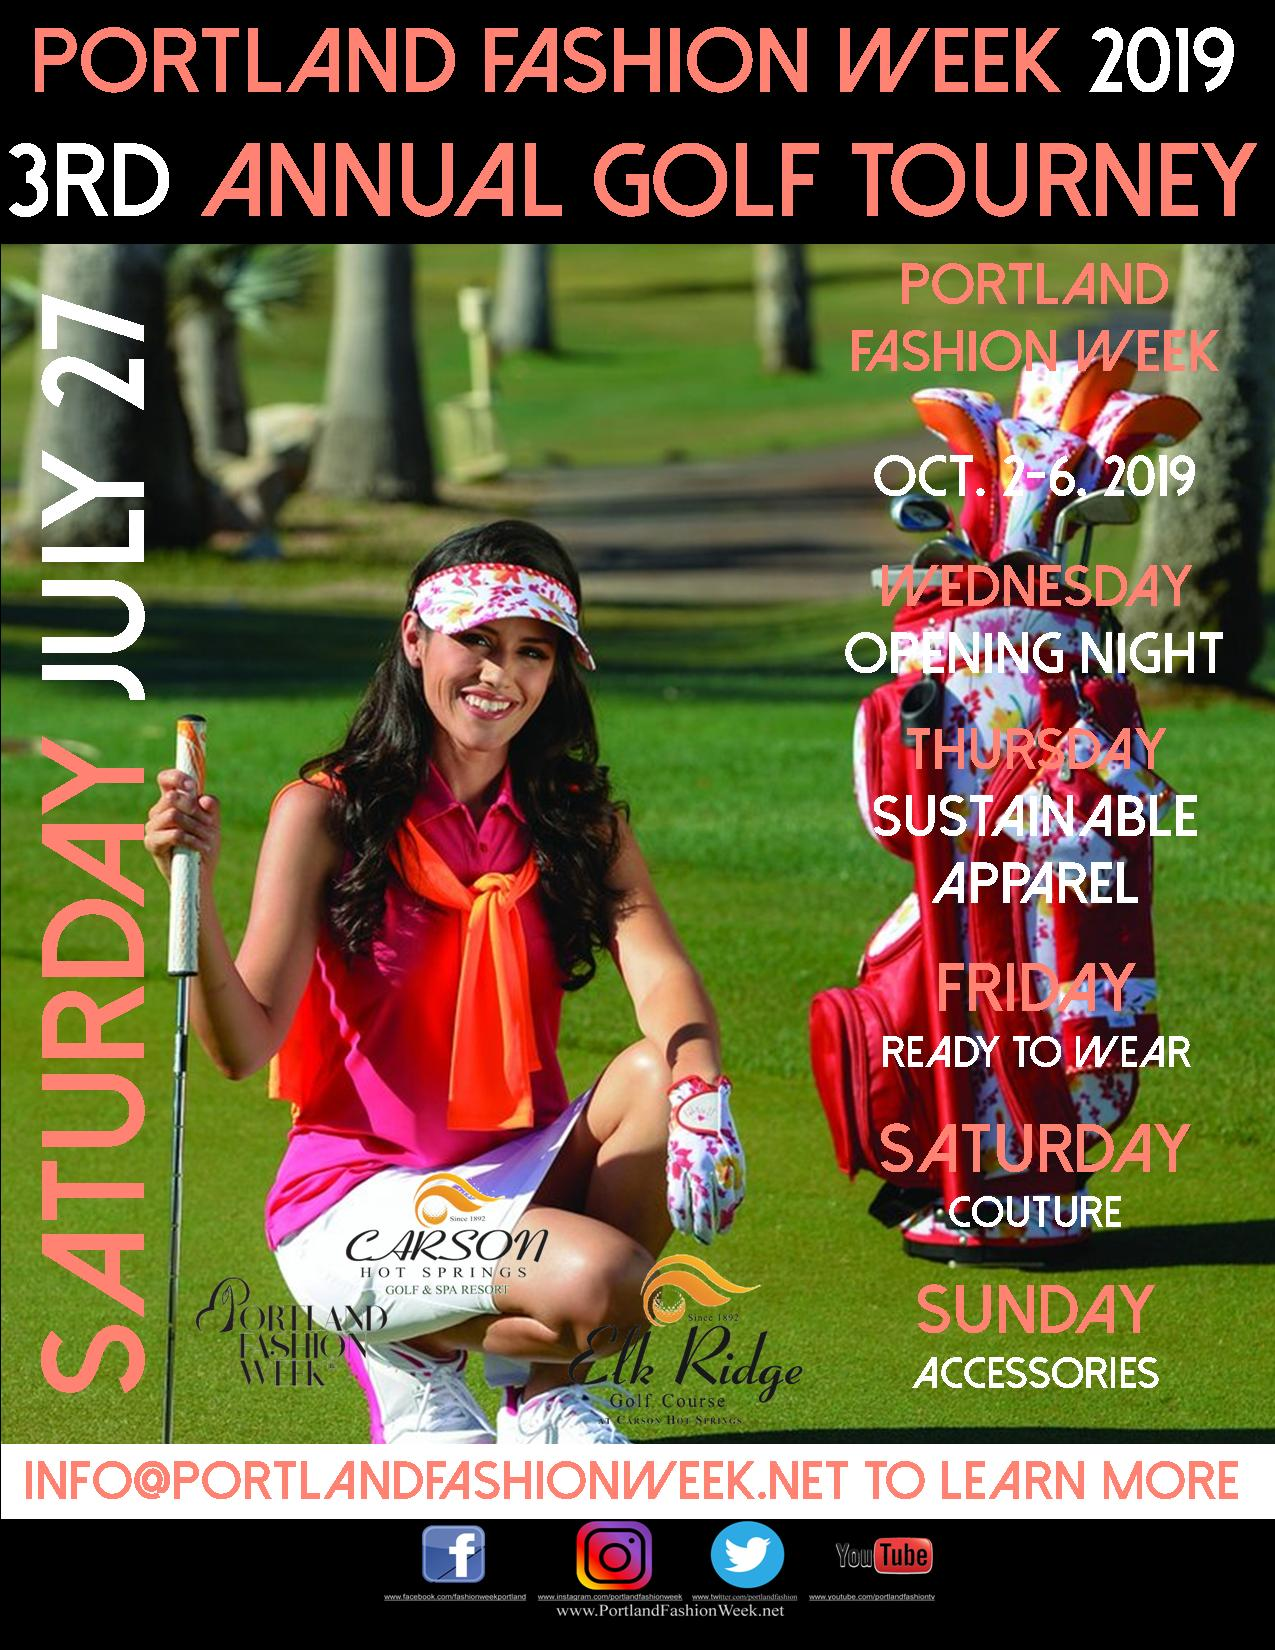 "Teams are forming now! - Sponsor a hole, form a team, or just come out to support a good cause while enjoying the beautiful links, gorgeous Columbia River Gorge views and lunch in the Clubhouse with our famous ""Portland Fashion Week Bloody Mary Bar""!Our shotgun start and over $125,000.00 in cash and prizes since 2017 including a 1954 Jaguar XK 120, $1,000.00 Bounties on Holes in One from the Tee and 4th, and guaranteed prizes for all players make this a very attractive tourney to play in.From Elk Ridge Golf Course in Carson, WA., the region's premier golf course!"